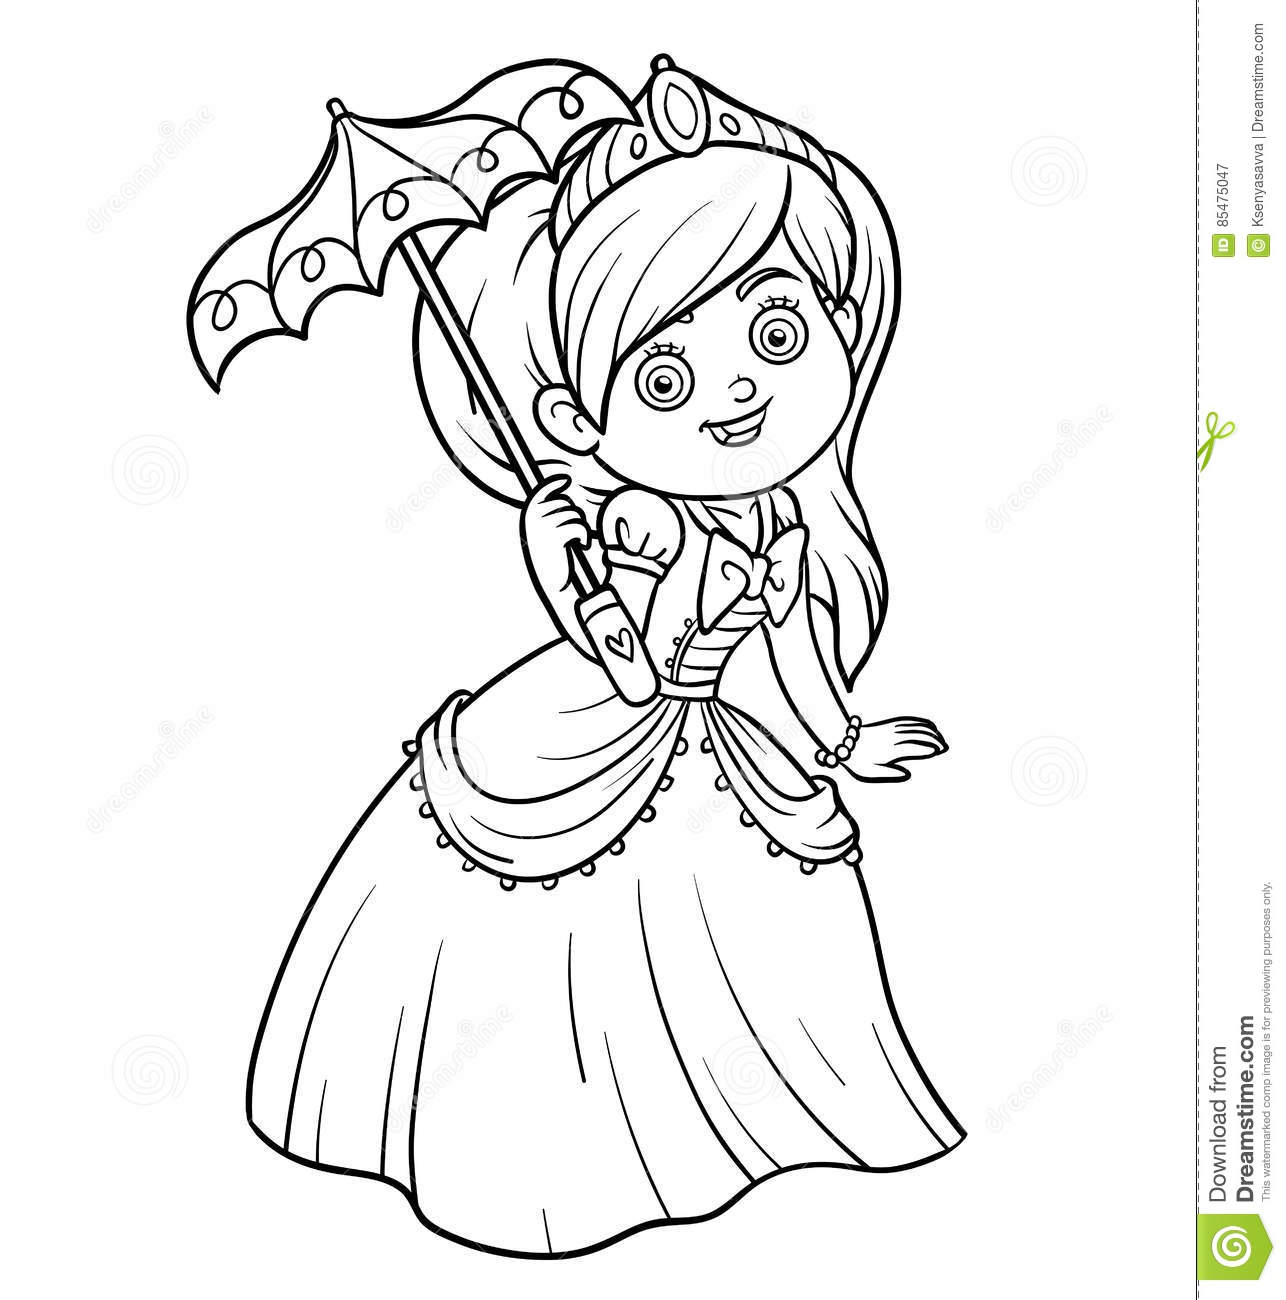 Coloring book princess - Coloring Book Princess With Umbrella